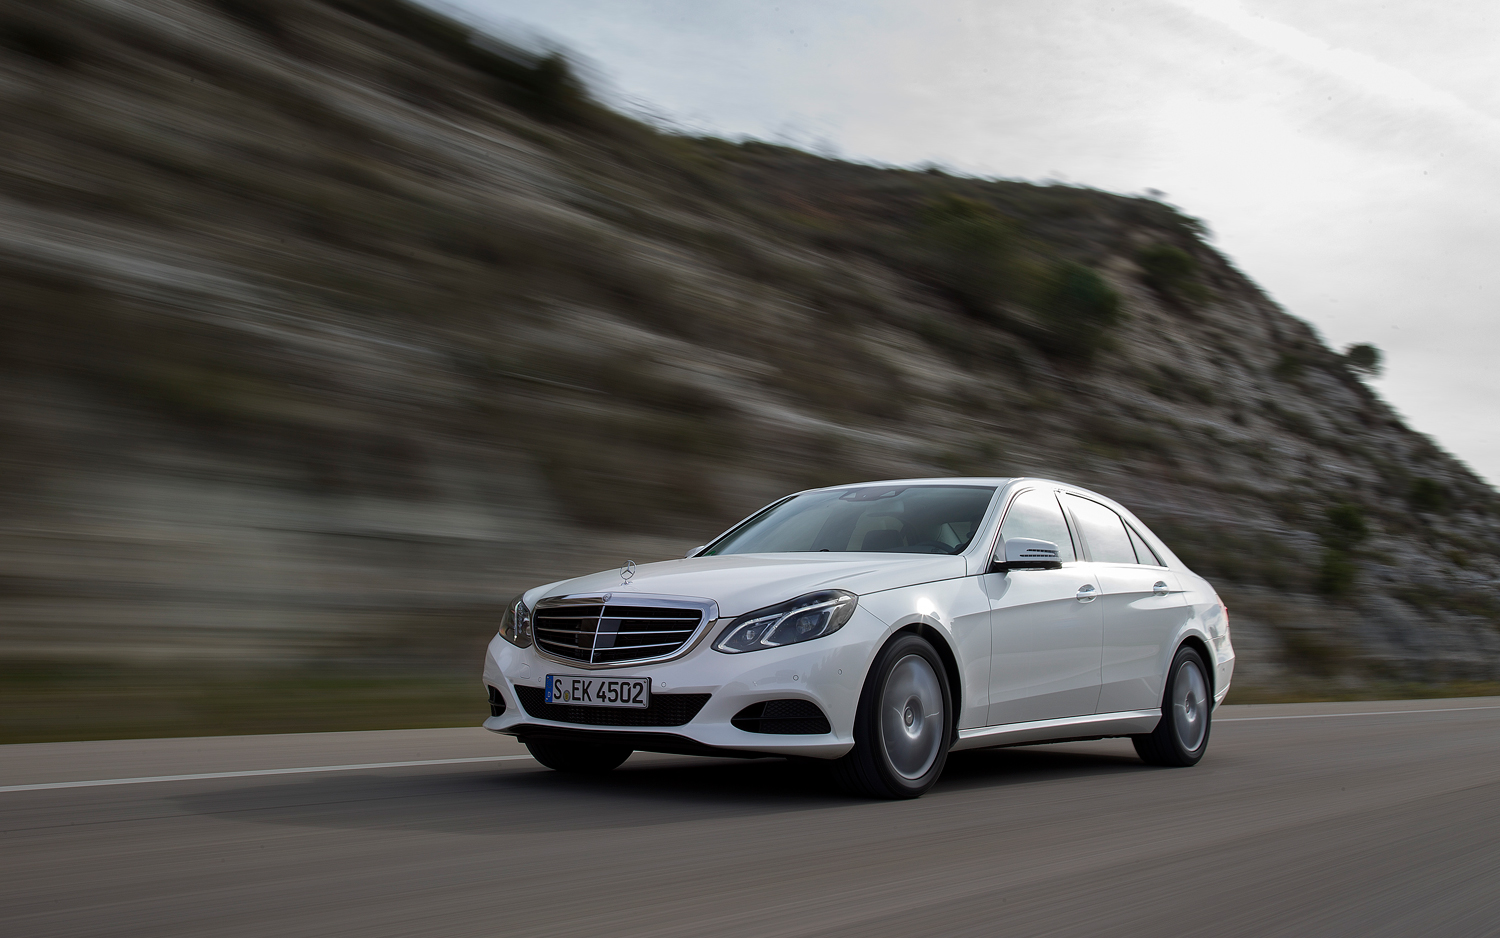 Mercedes benz usa selling more luxury cars than ever in for Mercedes benz offers usa